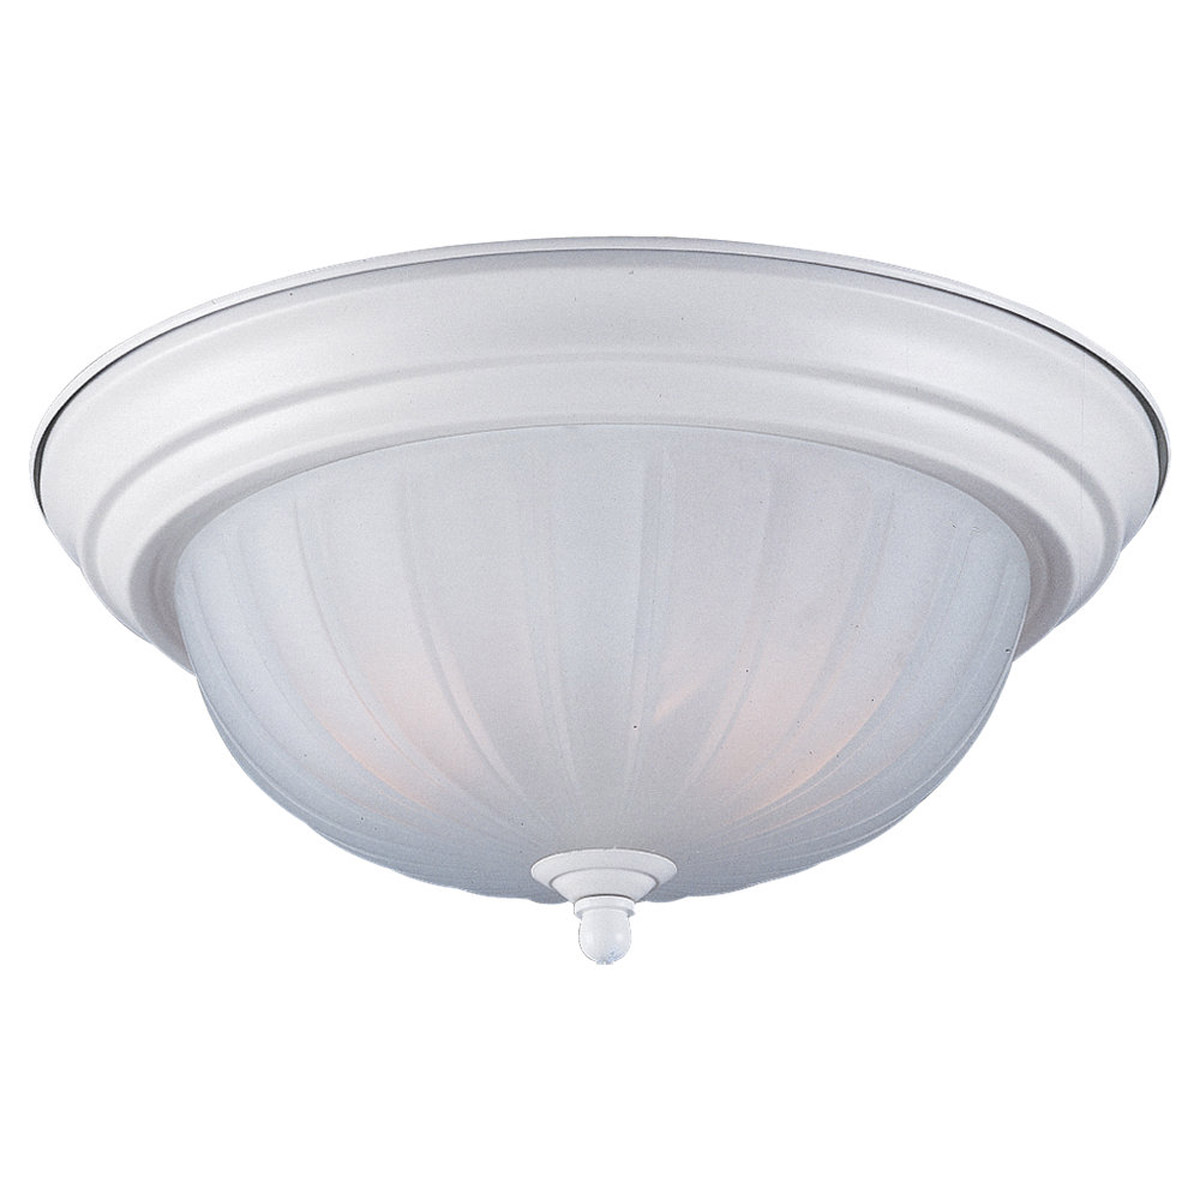 Sea Gull Lighting Floyd 2 Light Flush Mount in White 7505-15 photo